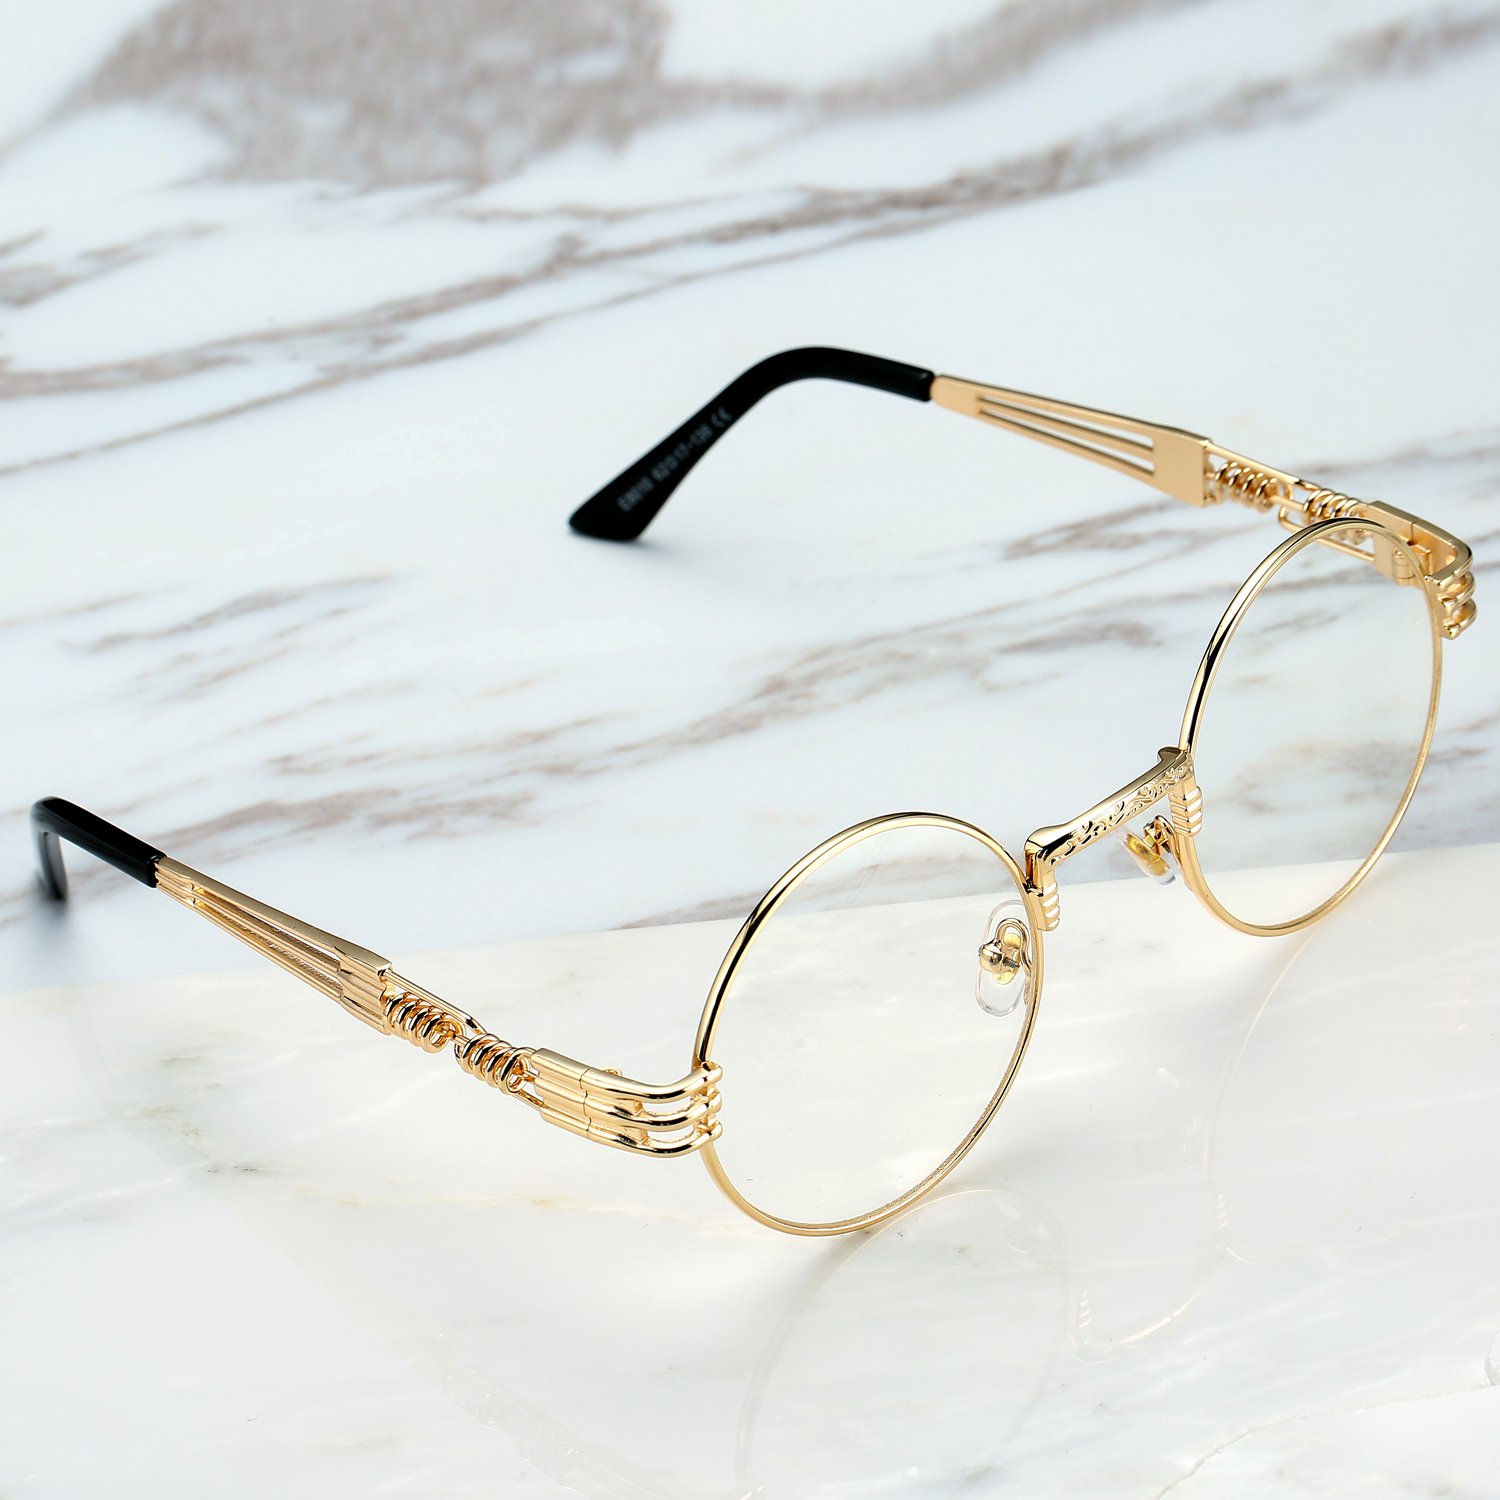 Pro Acme John Lennon Metal Spring Frame Round Steampunk Clear Lens Glasses (Gold Frame/Clear Lens) by Pro Acme (Image #2)